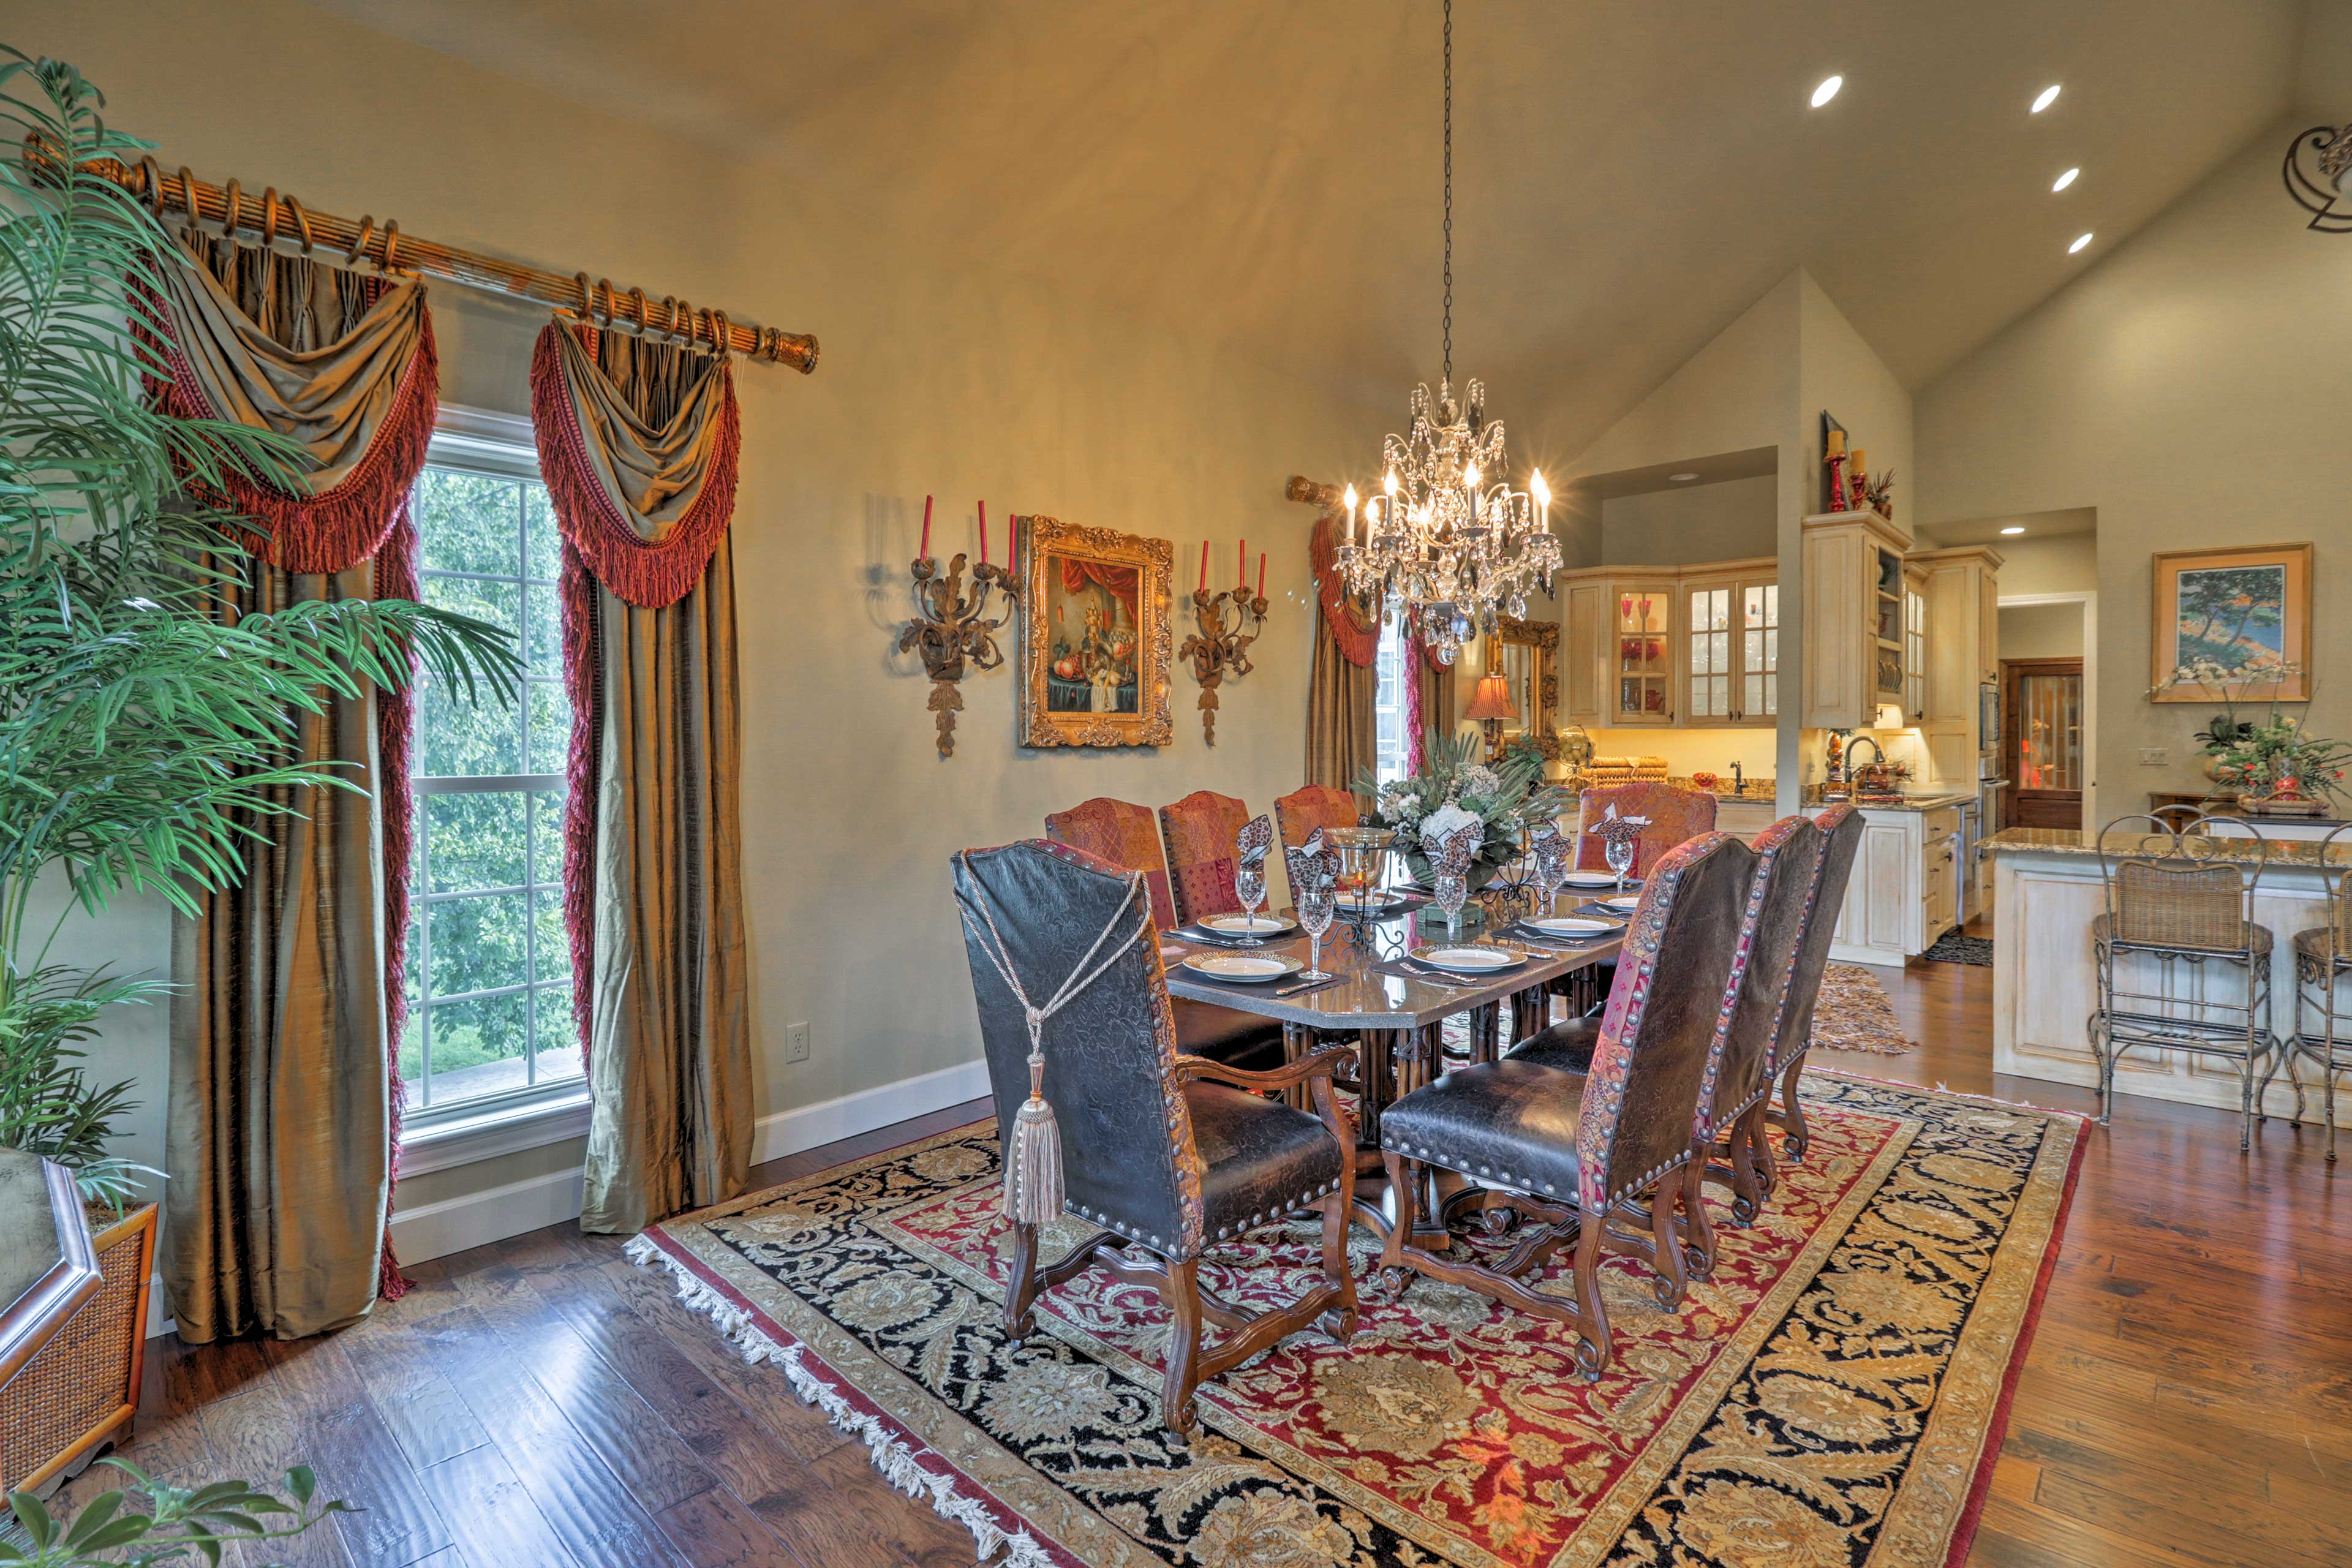 Sit down to a formal dinner at the 8-person table beneath the elegant chandelier